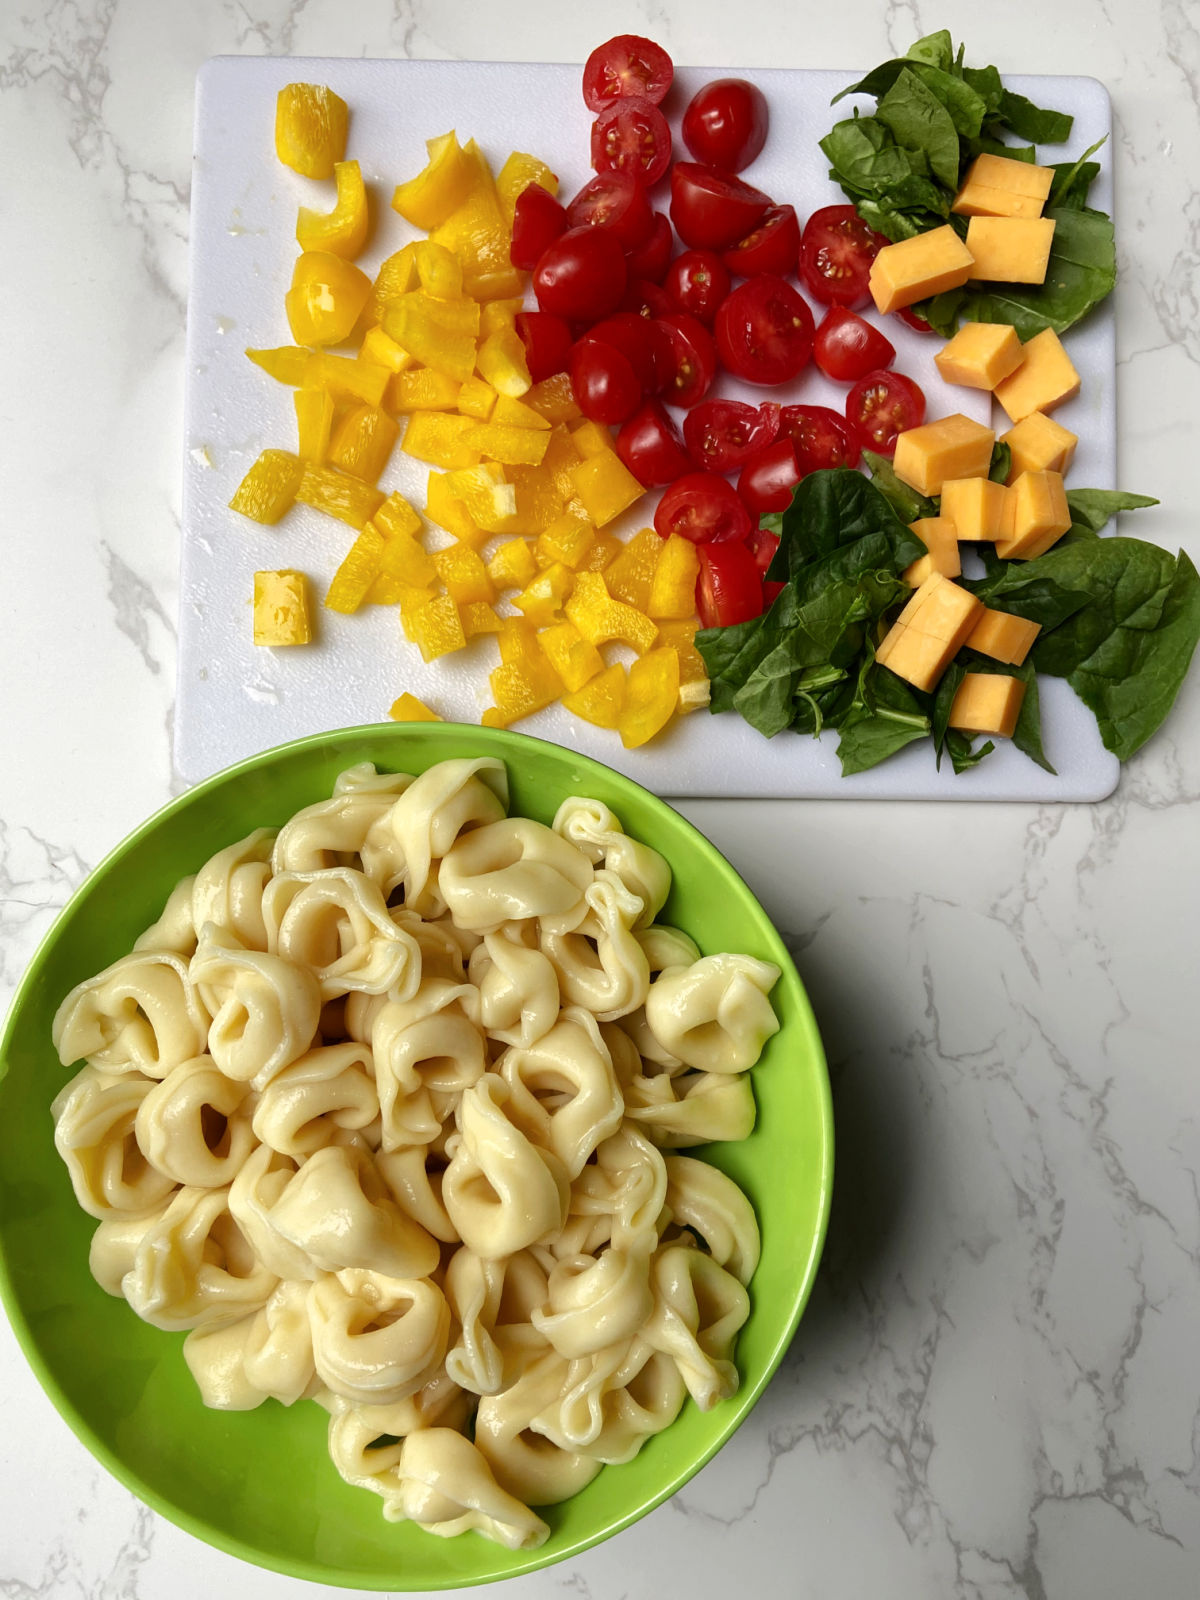 Bowl of cooked tortellini and chopped peppers, spinach, tomatoes and cheese.